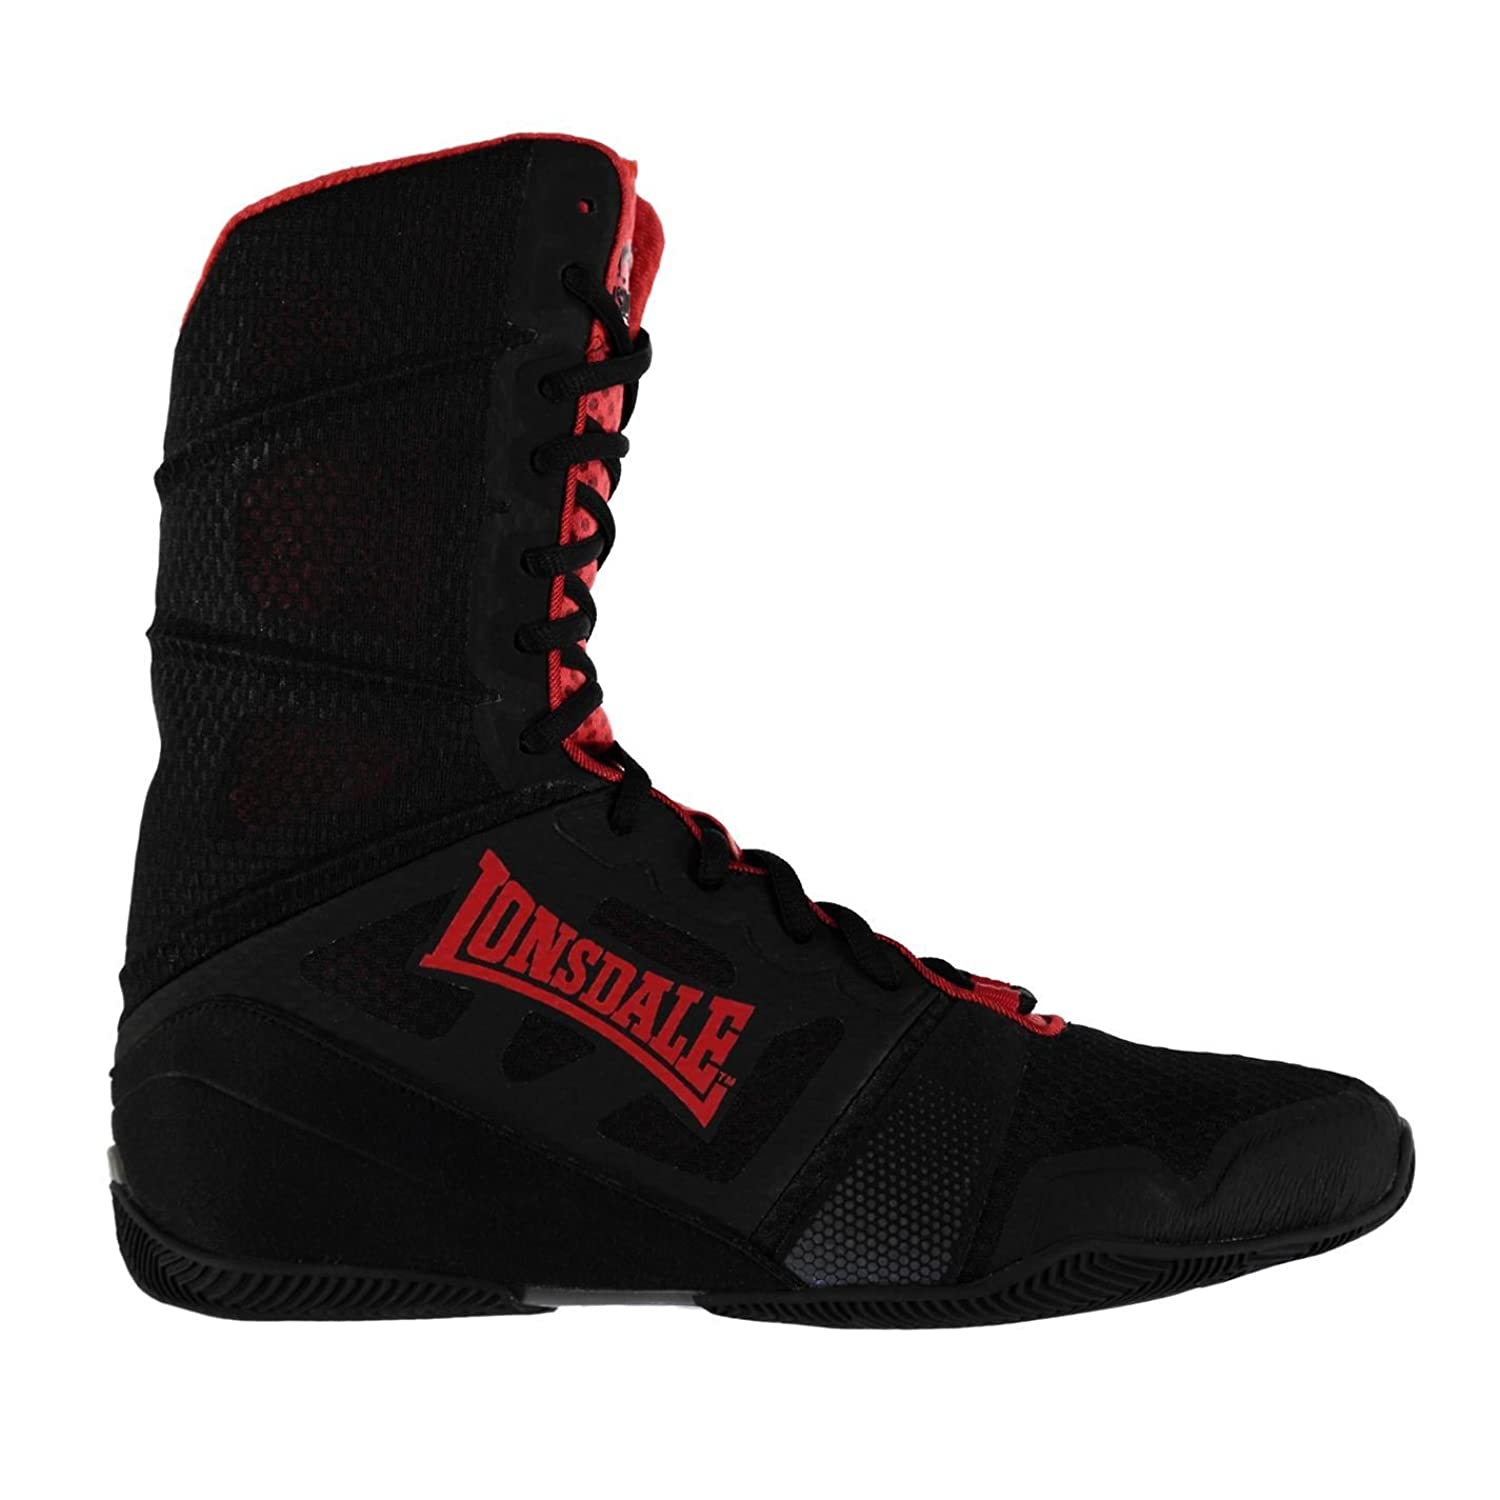 2ba109144c09 Lonsdale Mens Cruiser Hi Tops Boxing Boots Shoes Lace Up Training Sports